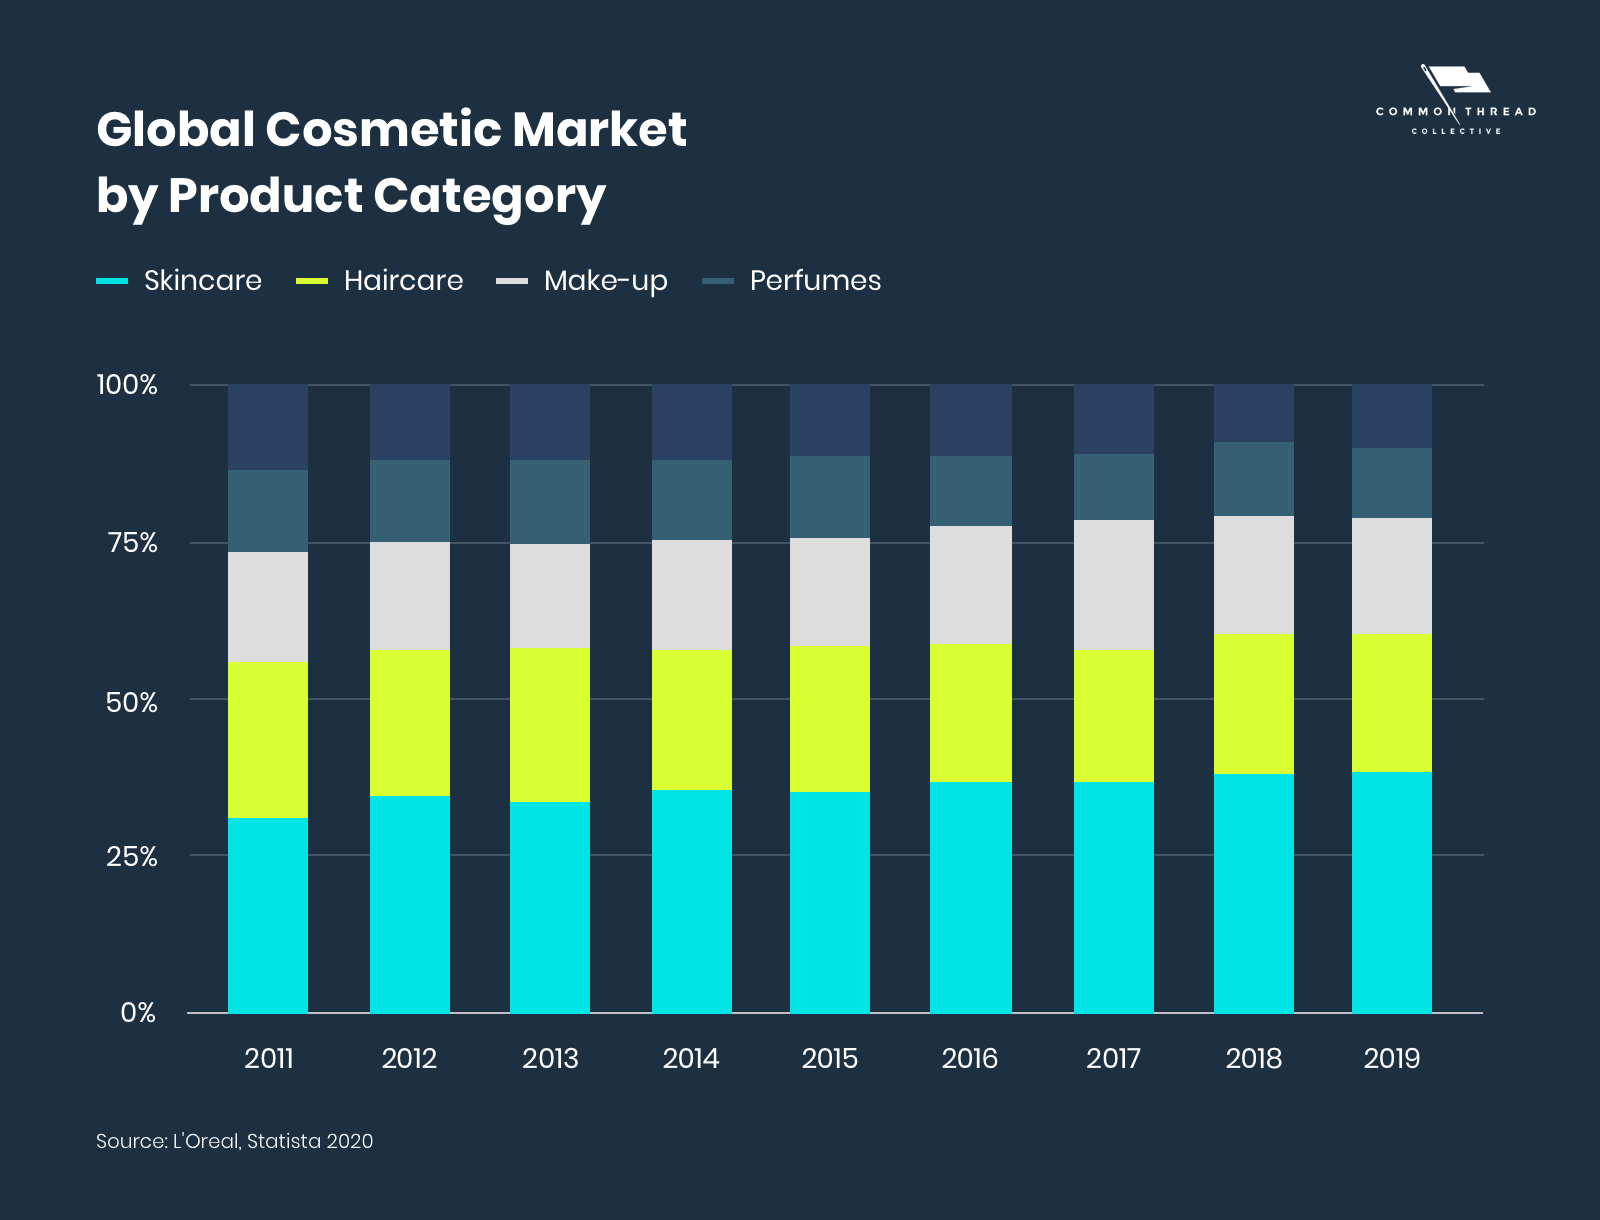 Global Cosmetic Market by Product Category